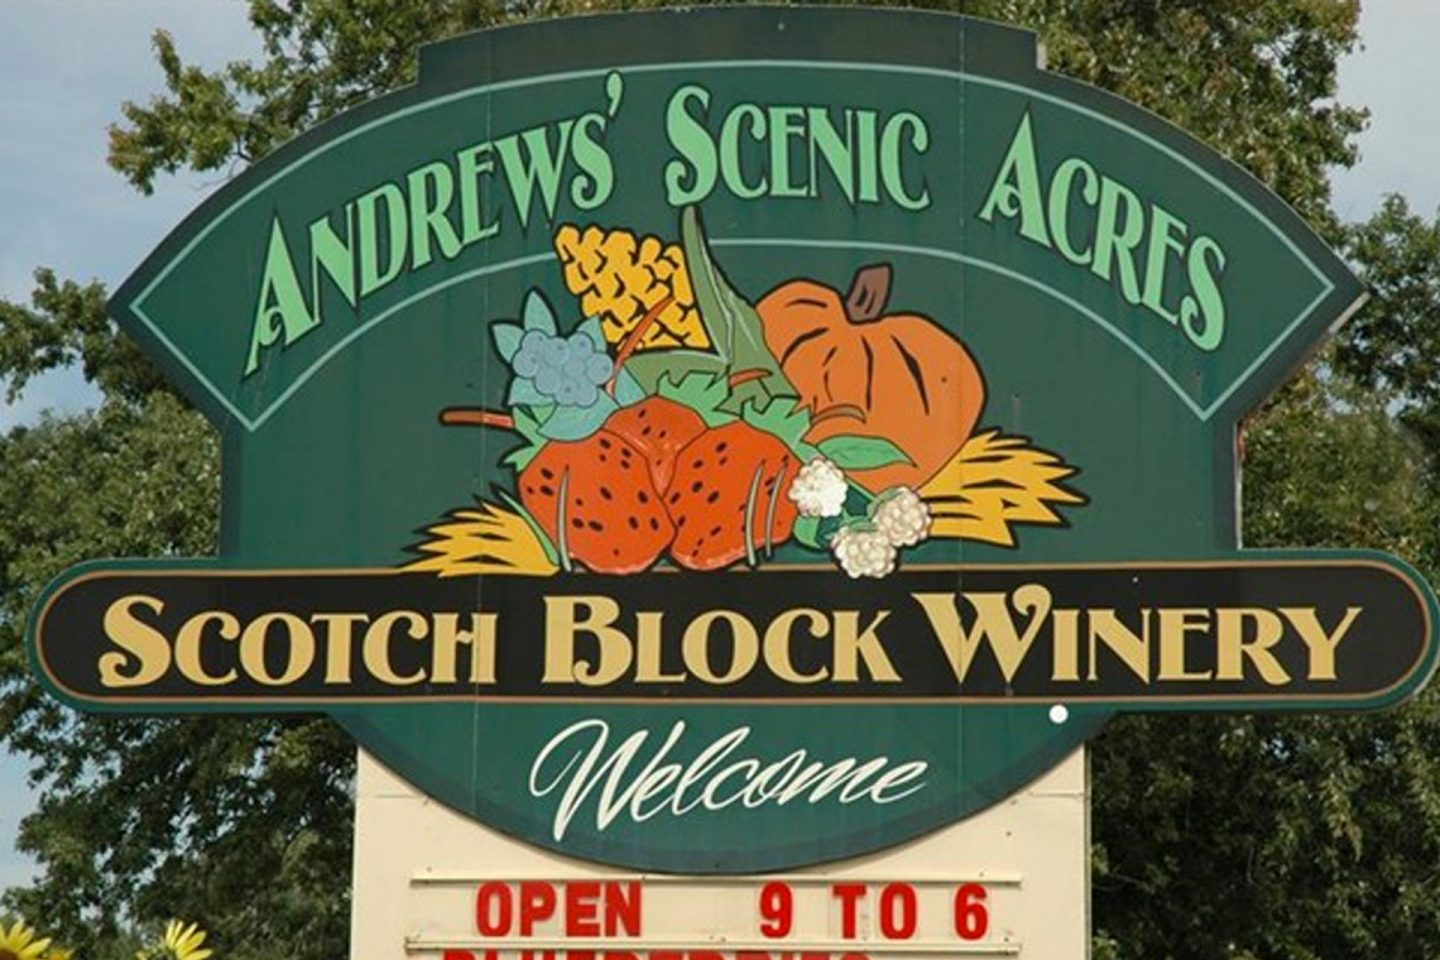 Scotch Block Winery